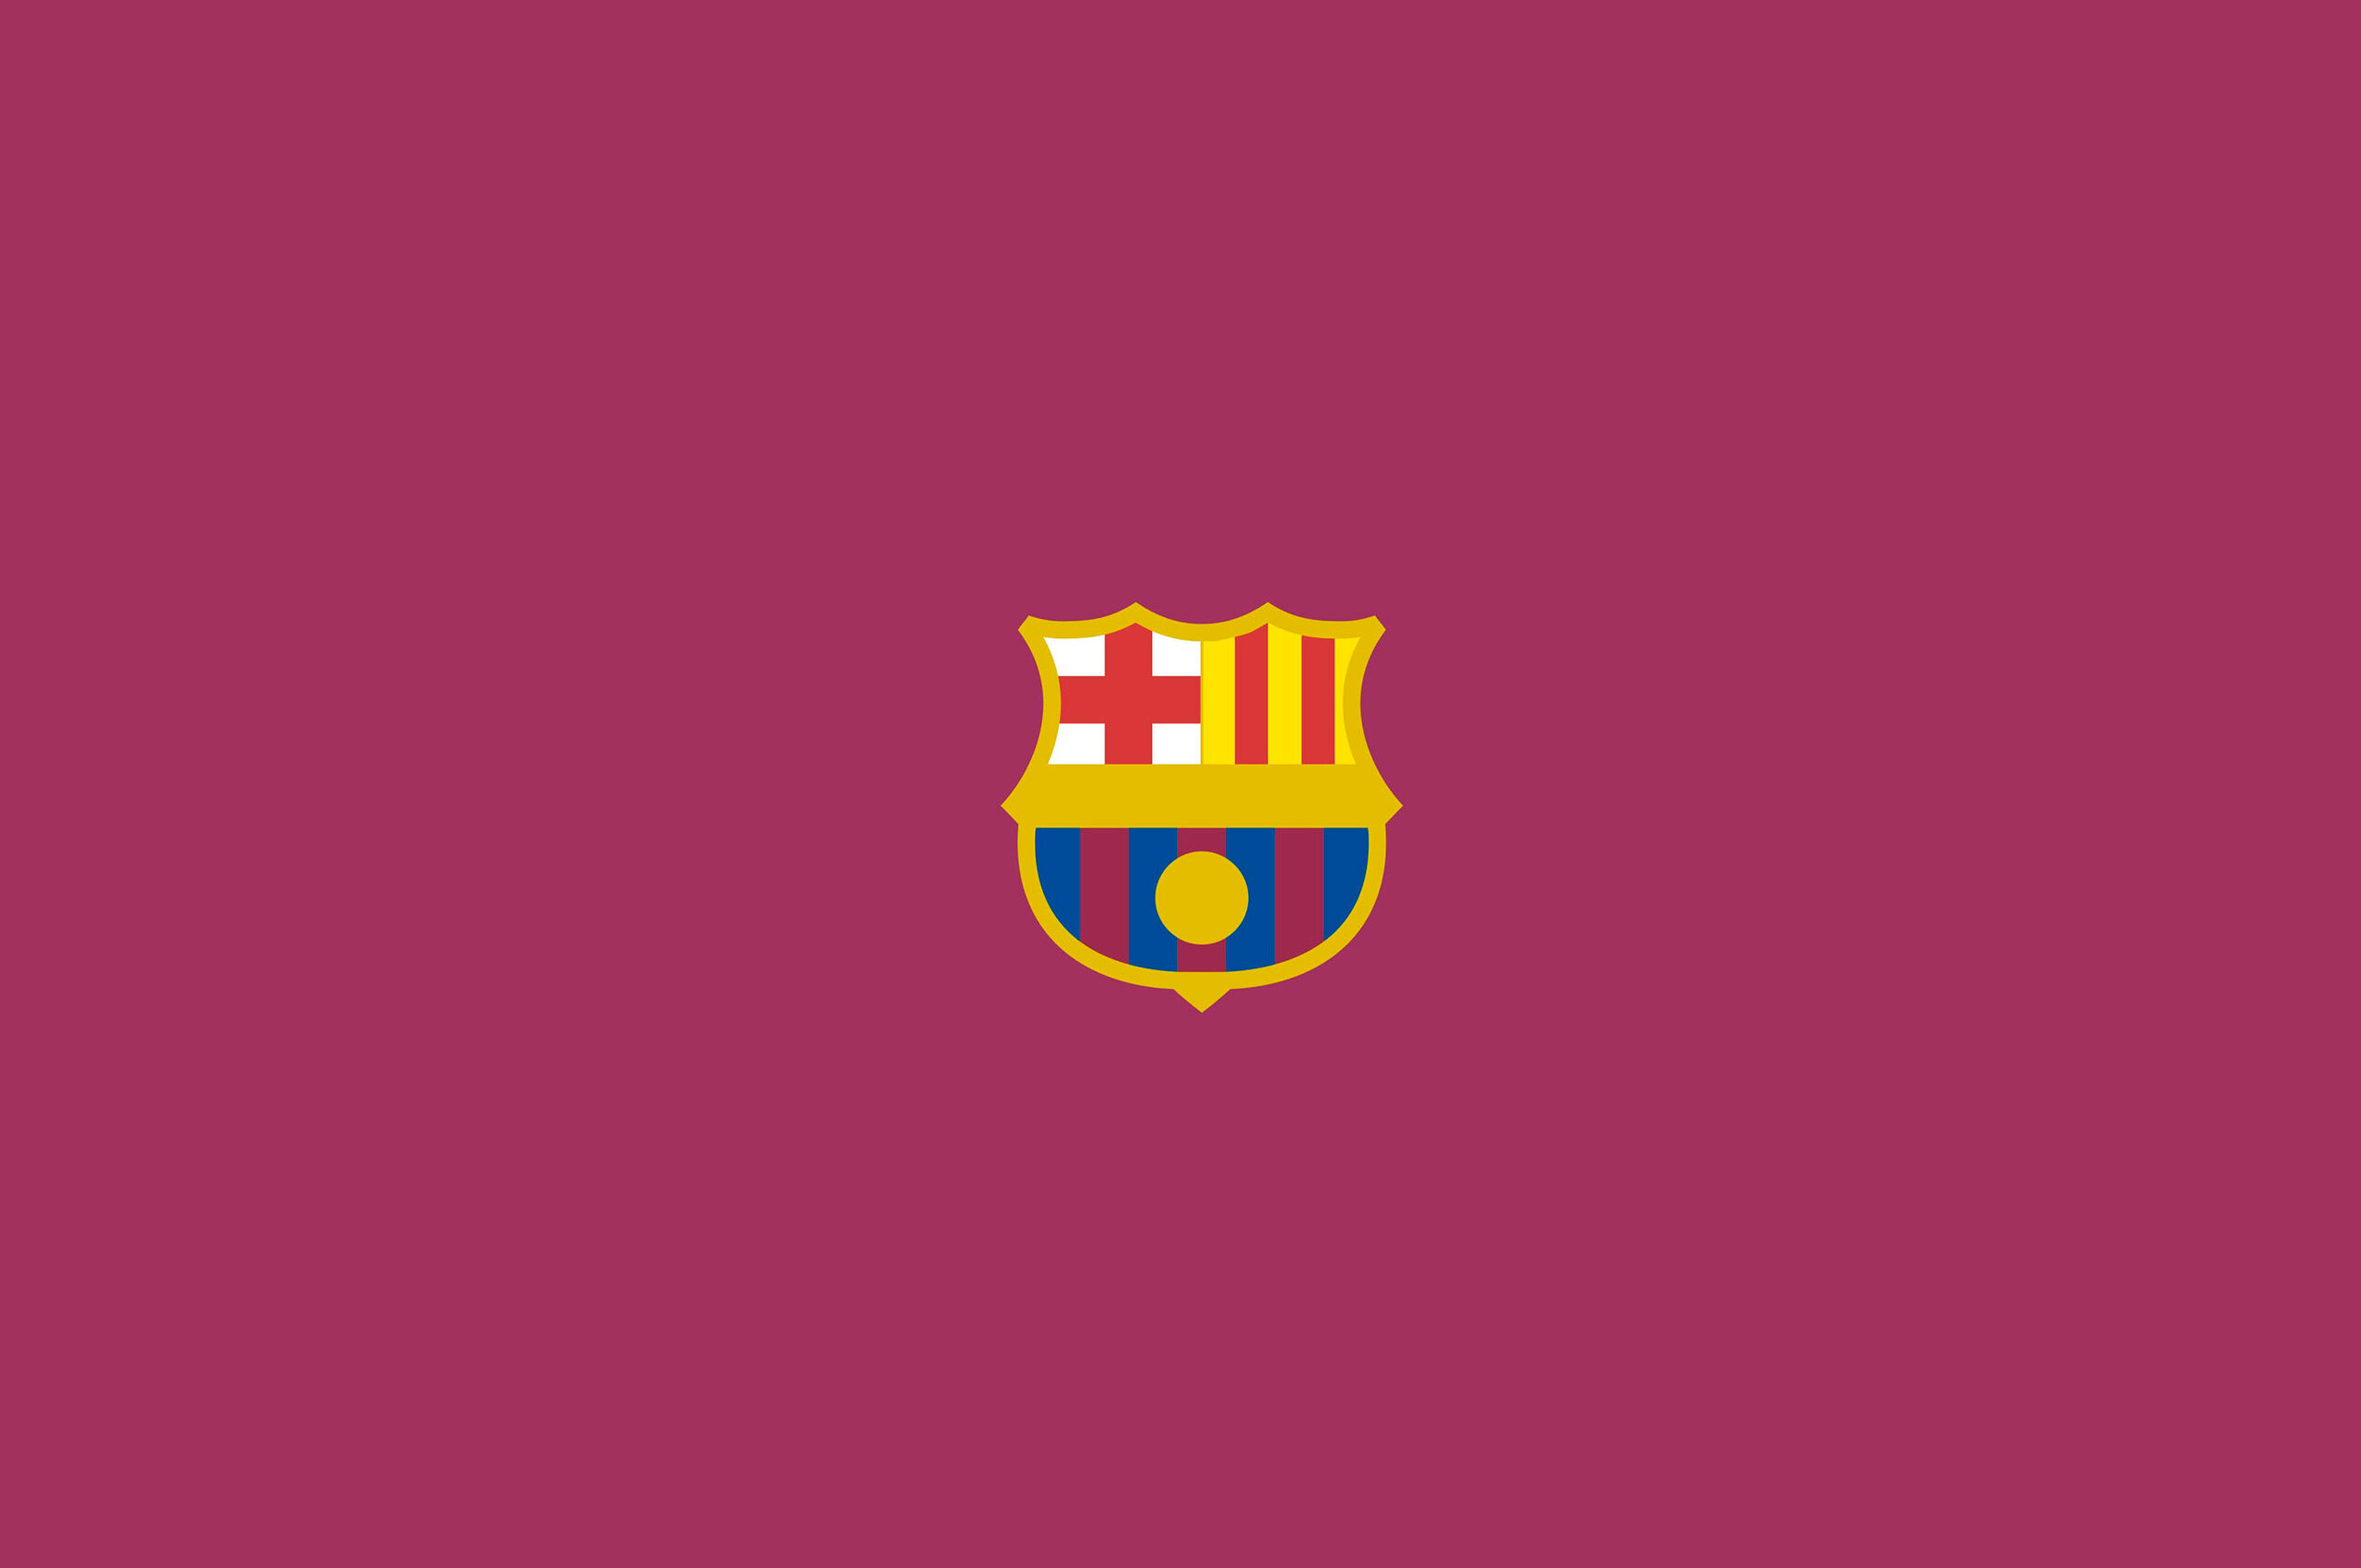 2560x1700 Fc Barcelona Logo Minimalism Chromebook Pixel Hd 4k Wallpapers Images Backgrounds Photos And Pictures